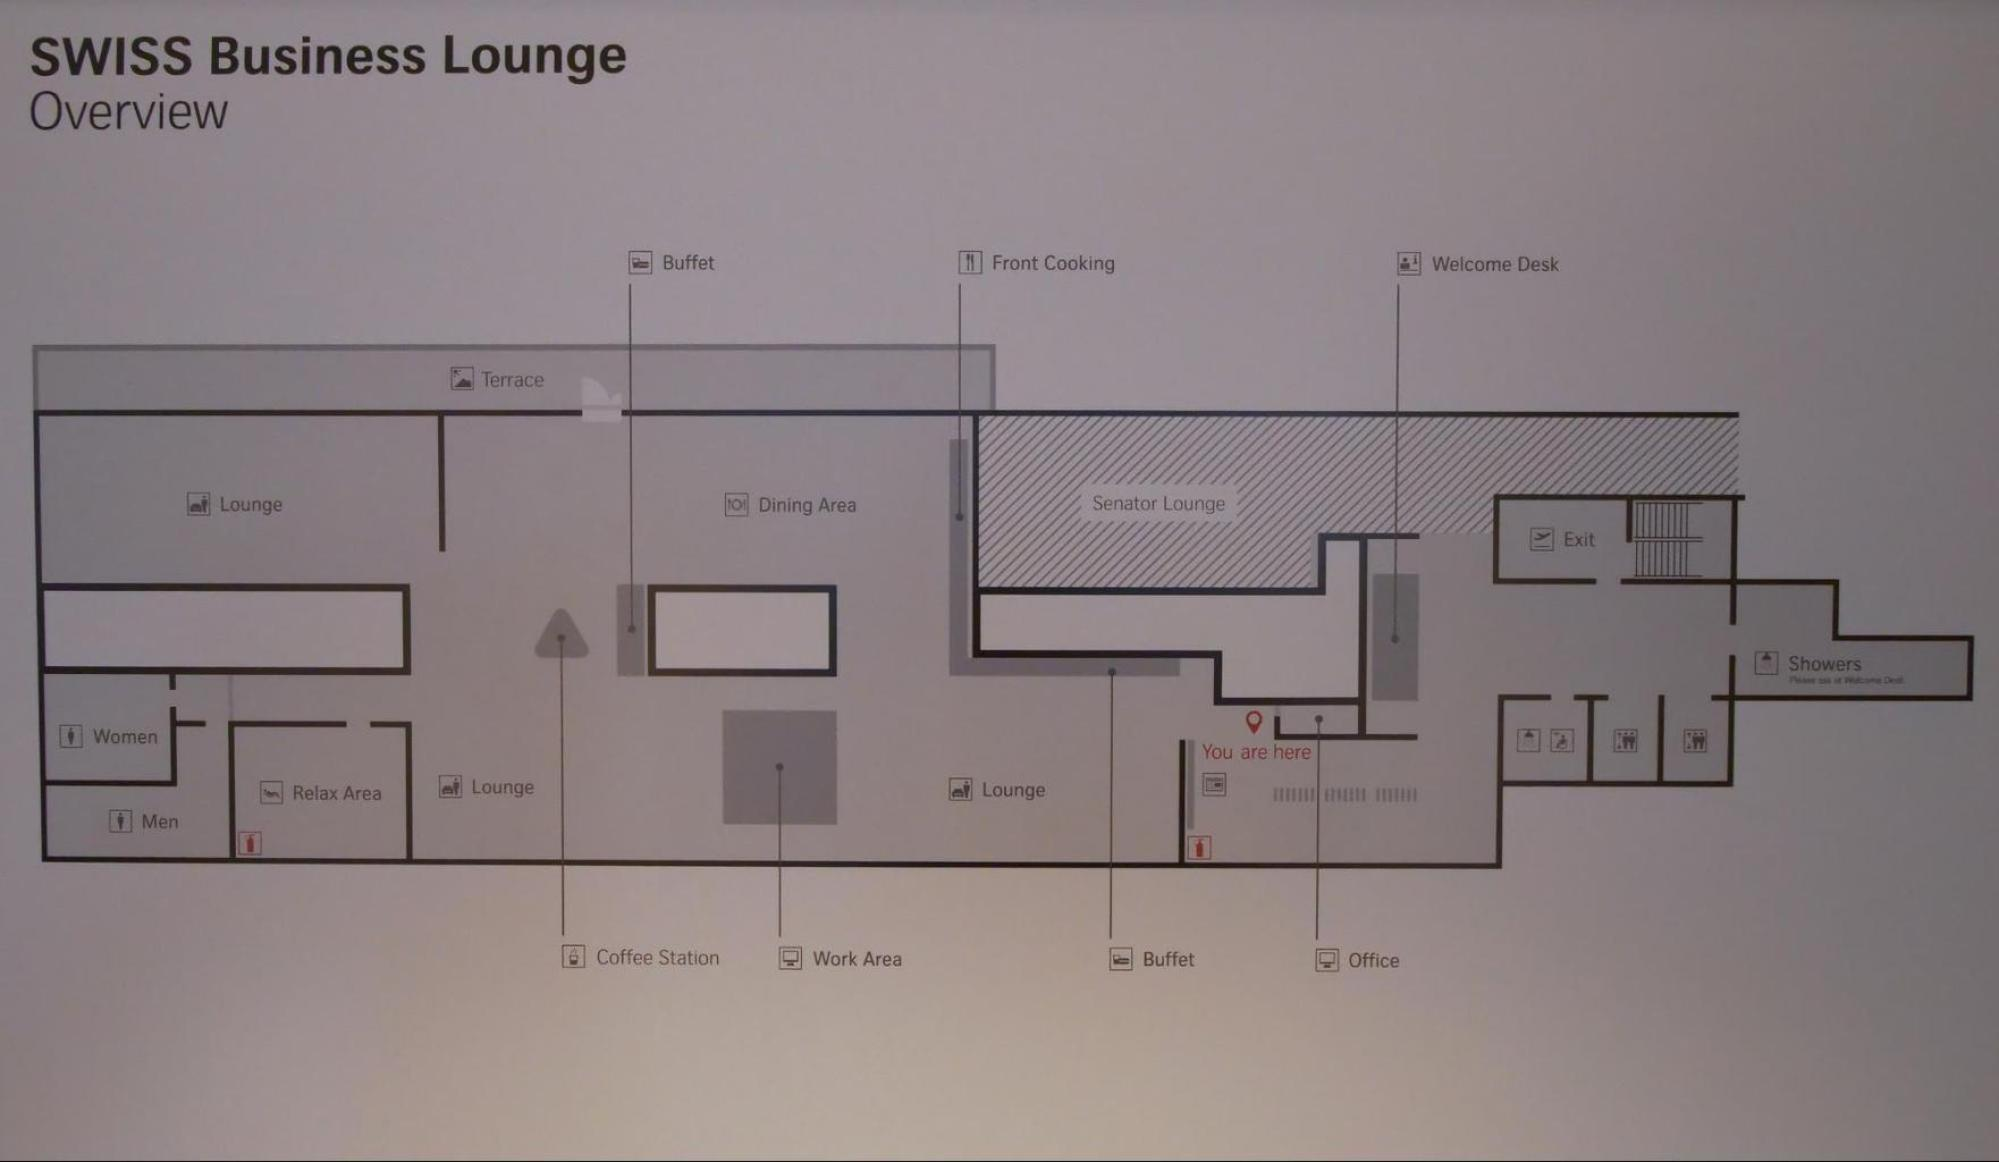 Floor plan of Swiss Business Class lounge at Zurich airport